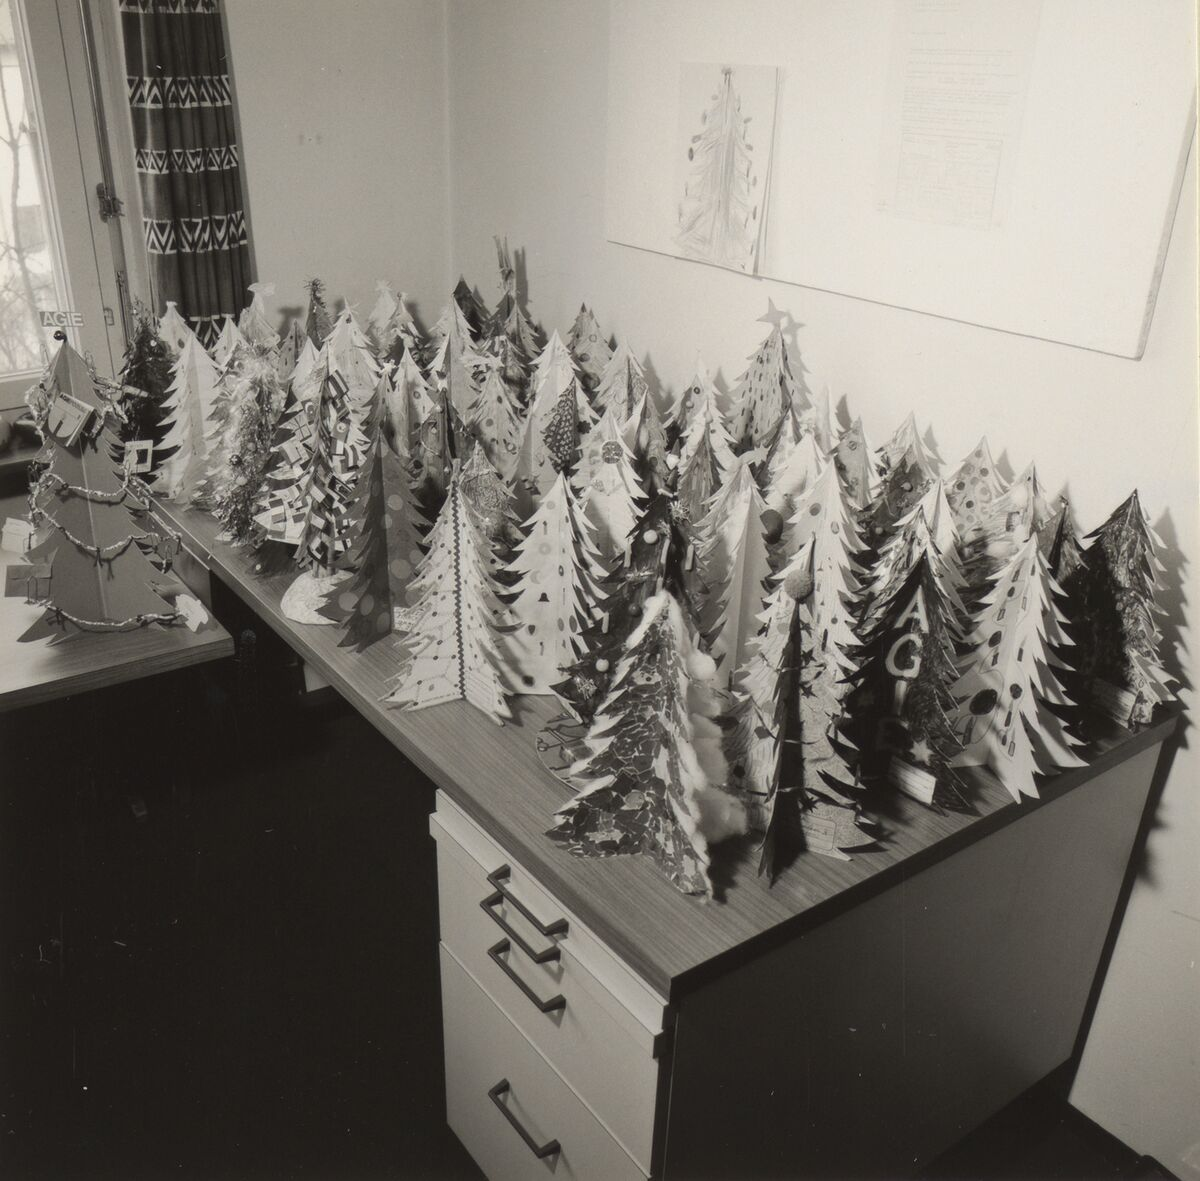 GFA 42/62177: Christmas trees from the children's competition AGIEFORUM 6/74